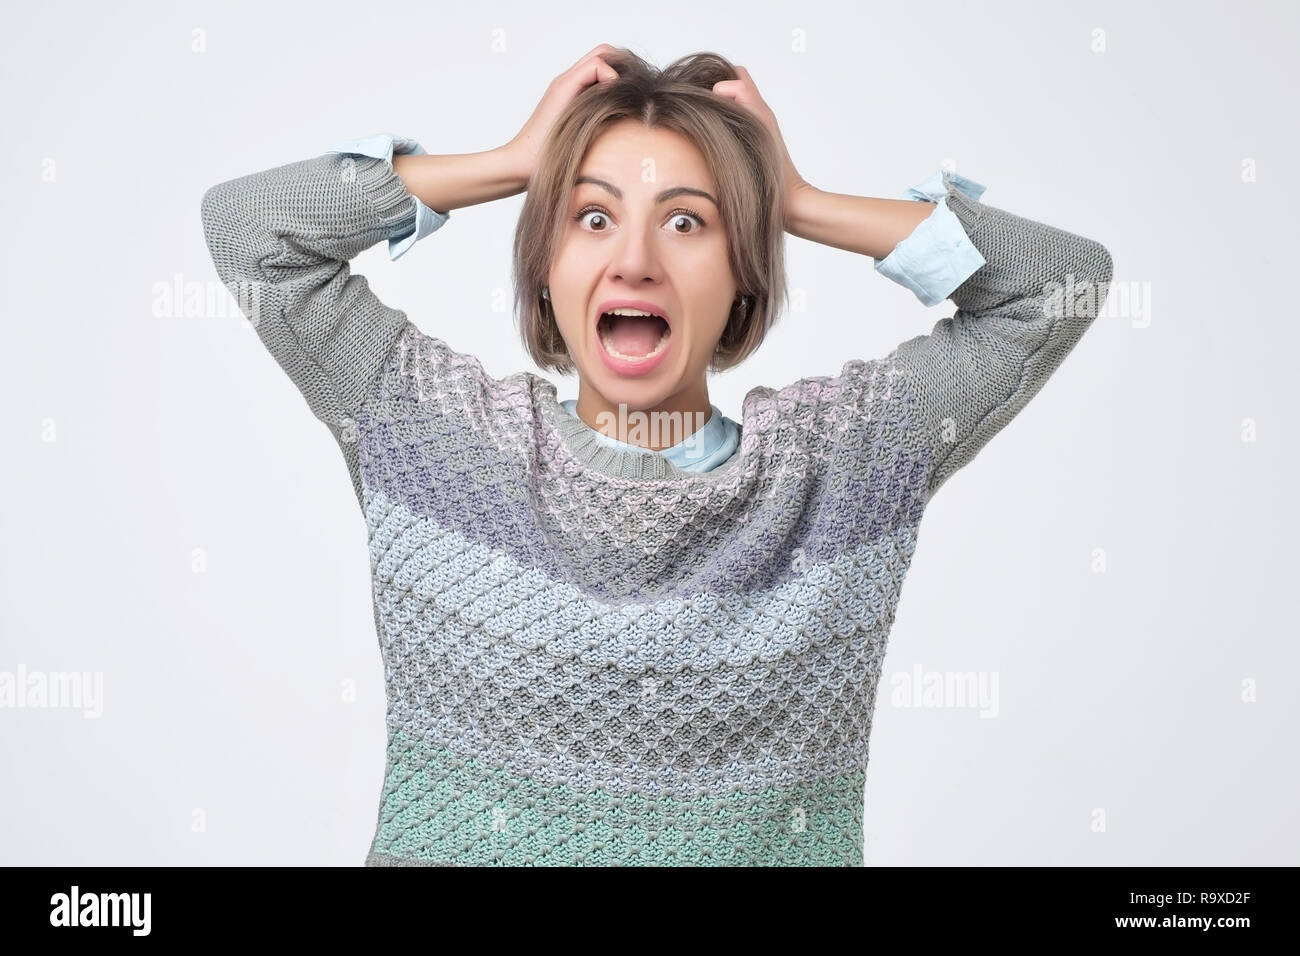 Shocked amazed young woman with hands on head standing and shouting - Stock Image